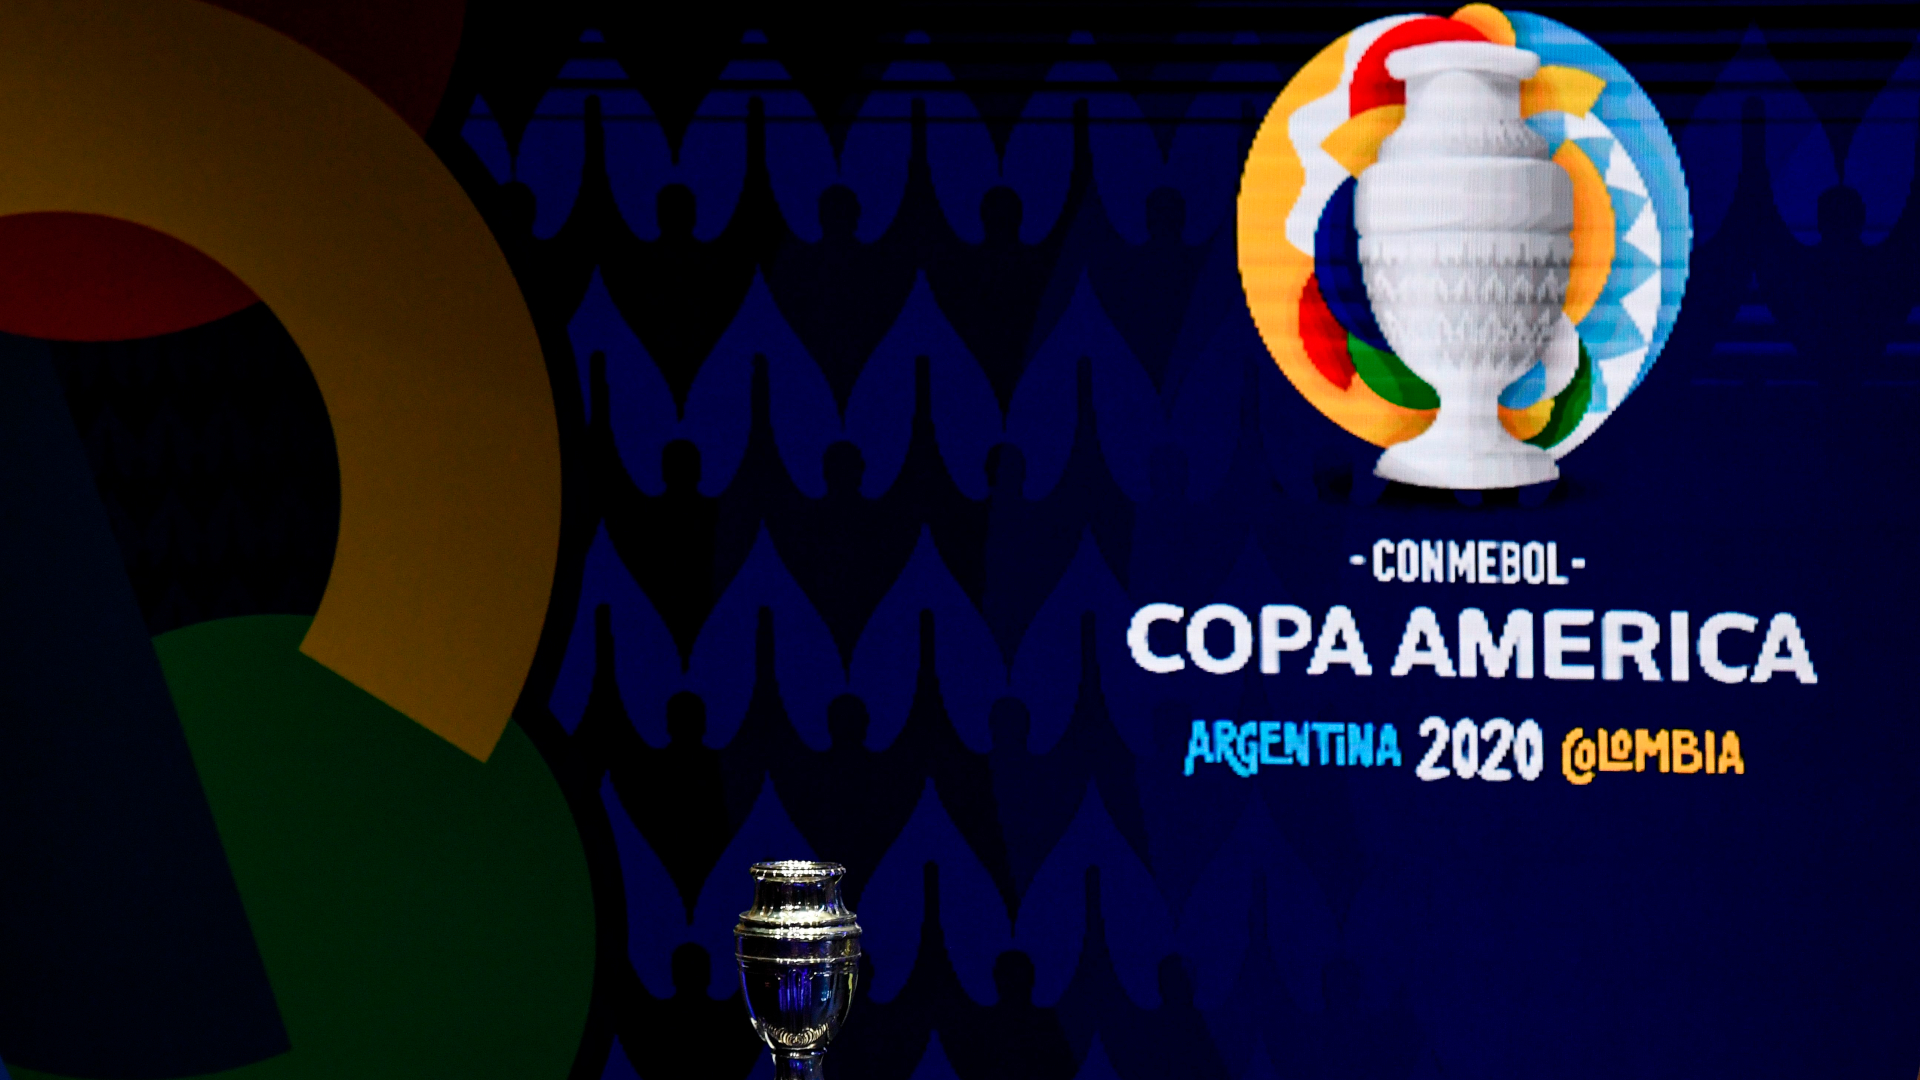 Copa America pulled from Argentina as Covid crisis puts tournament in jeopardy